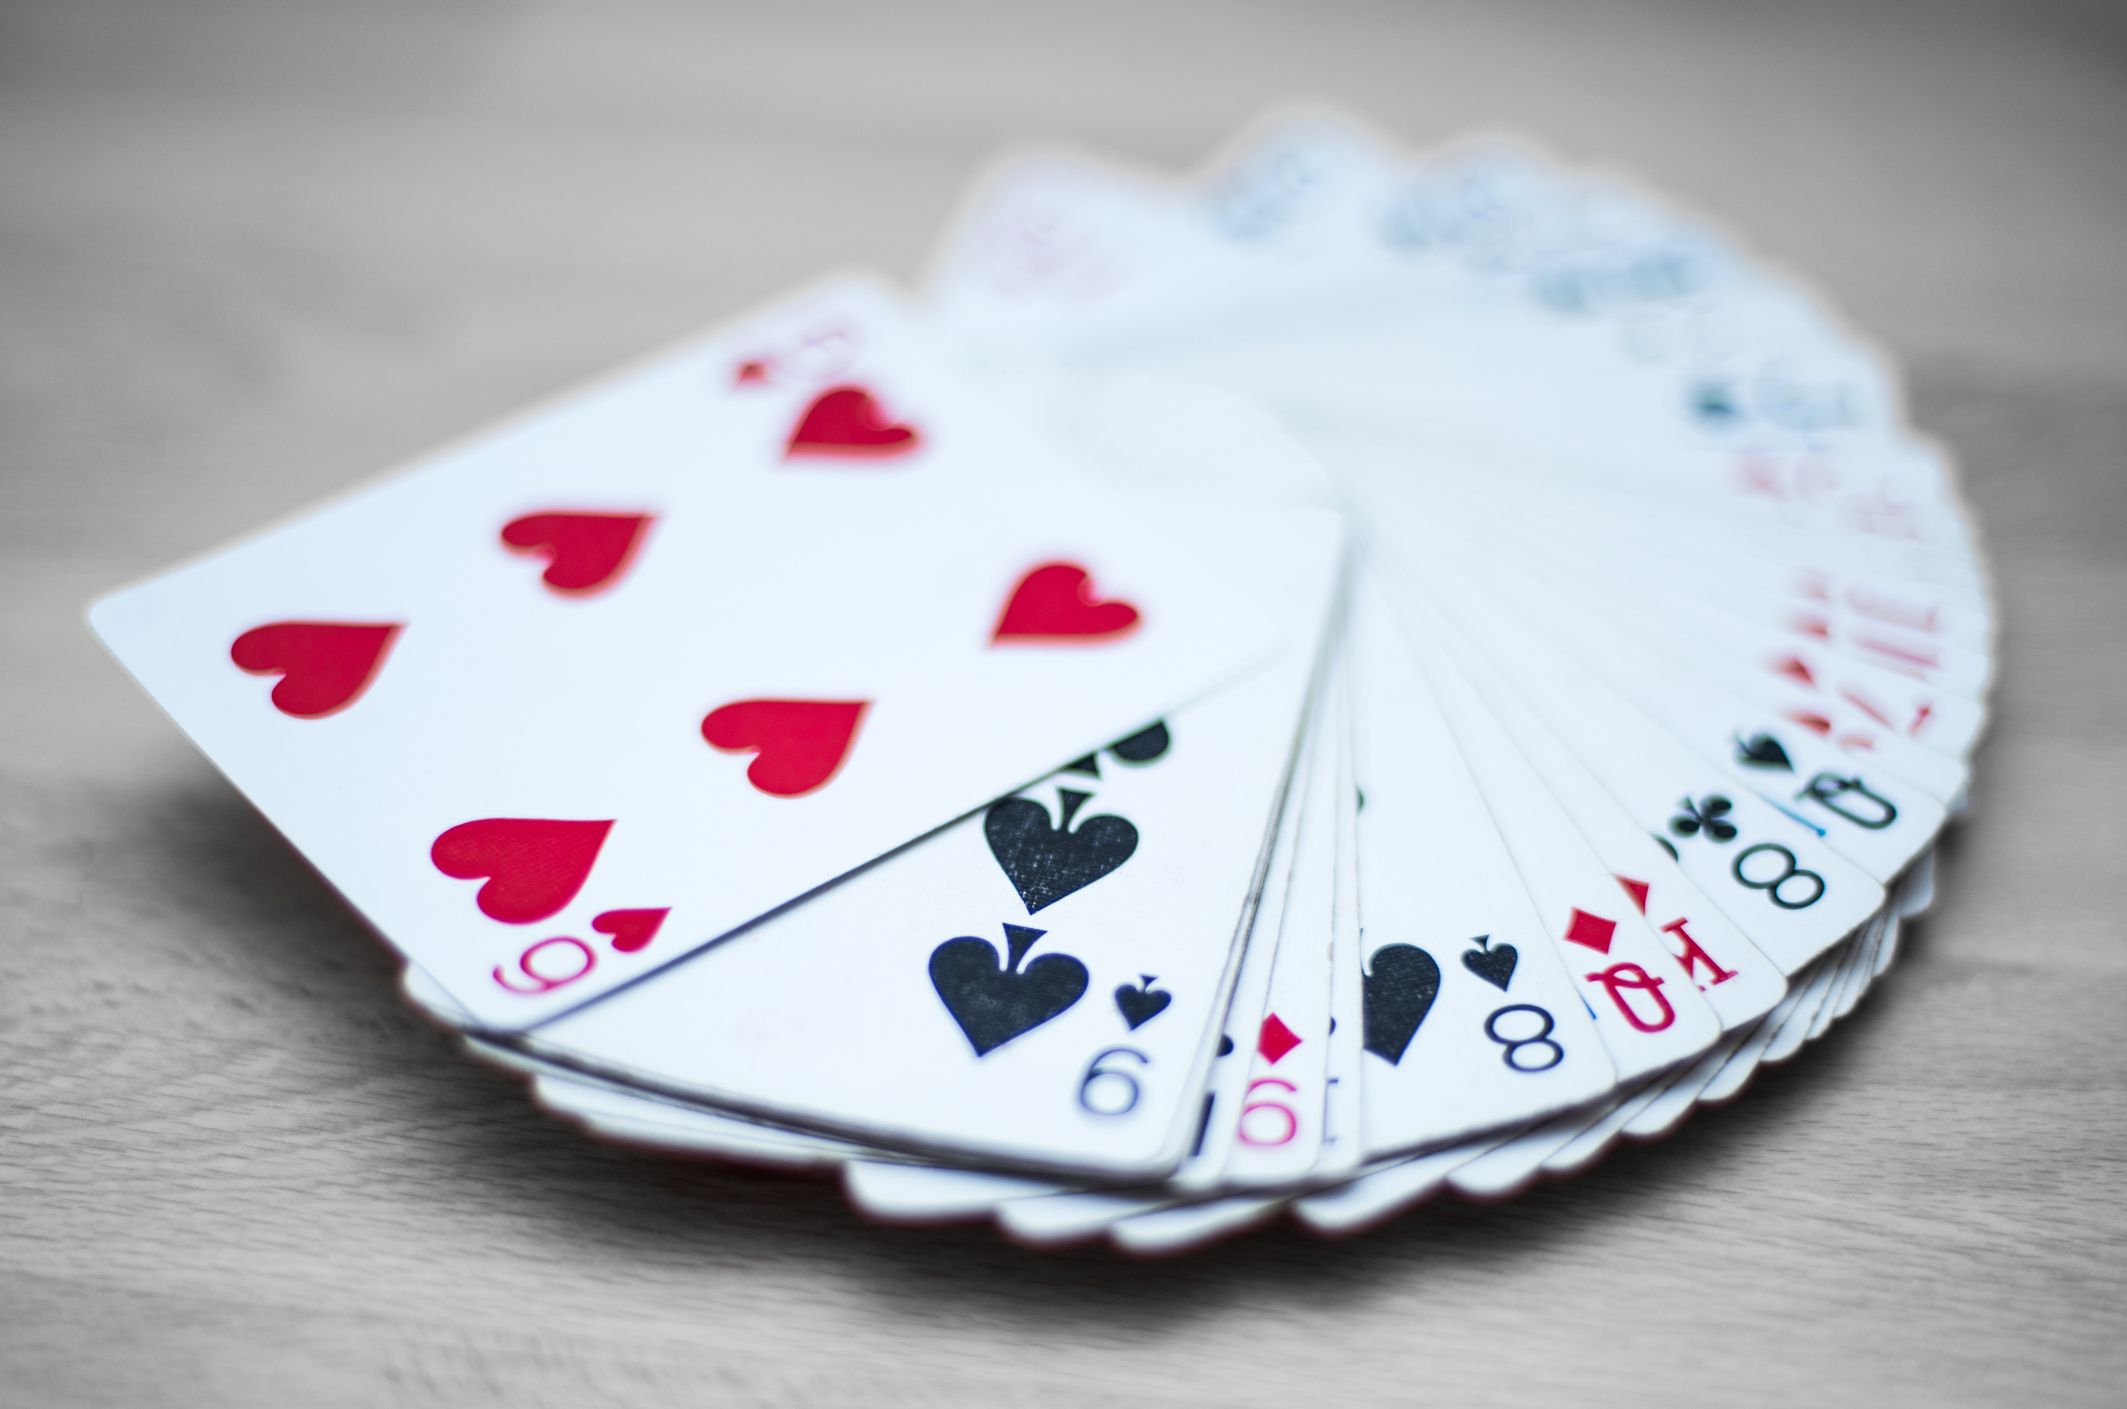 Easy magic tricks the best of the predictions an easy card trick that will dazzle your friends magicingreecefo Choice Image